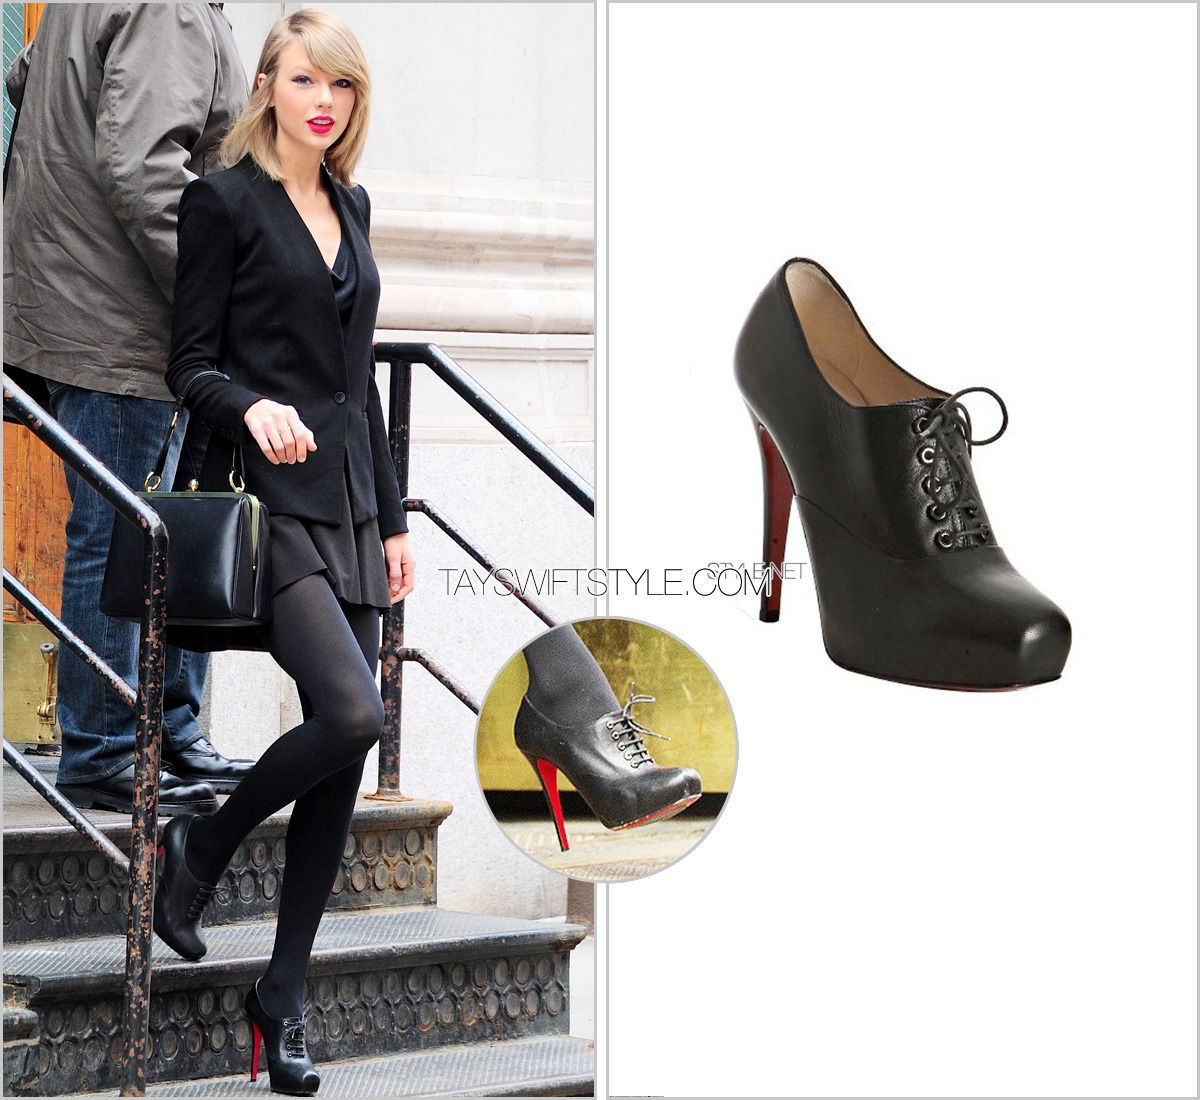 Leaving her apartment | April 17, 2014 | New York City, NY Christian Louboutin 'Mamanouk Lace Up Booties' - no longer available Worn with: Helmut Lang blazer and Dolce & Gabbana bag Check out all the times Taylor has worn these booties here.